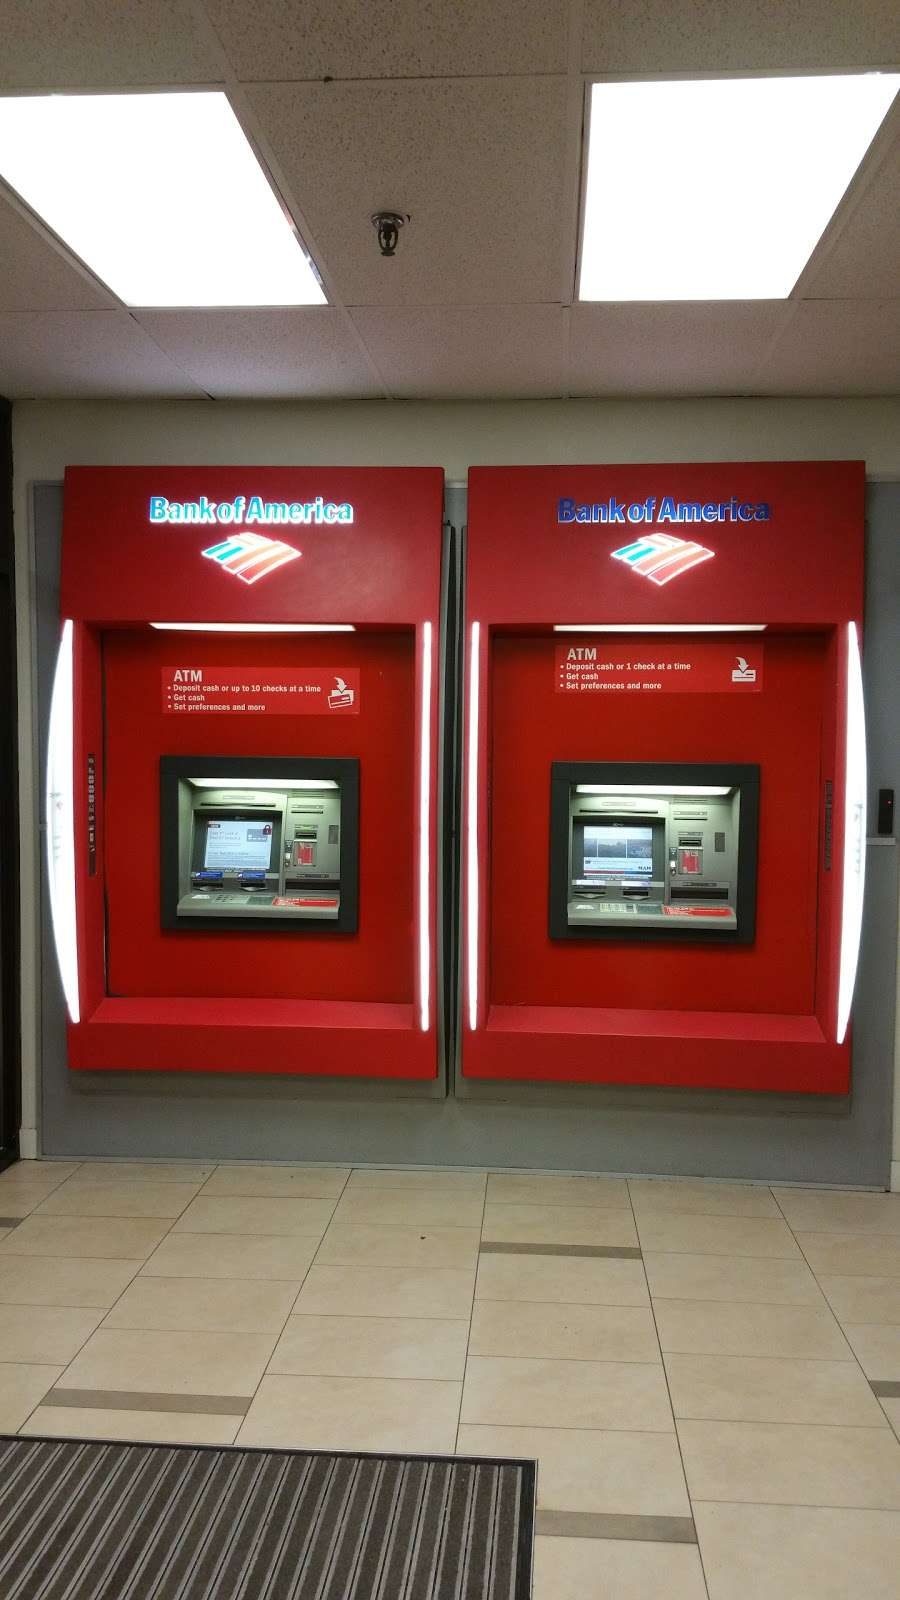 ATM (Bank of America) - atm  | Photo 1 of 1 | Address: 502 Central Ave, Teterboro, NJ 07608, USA